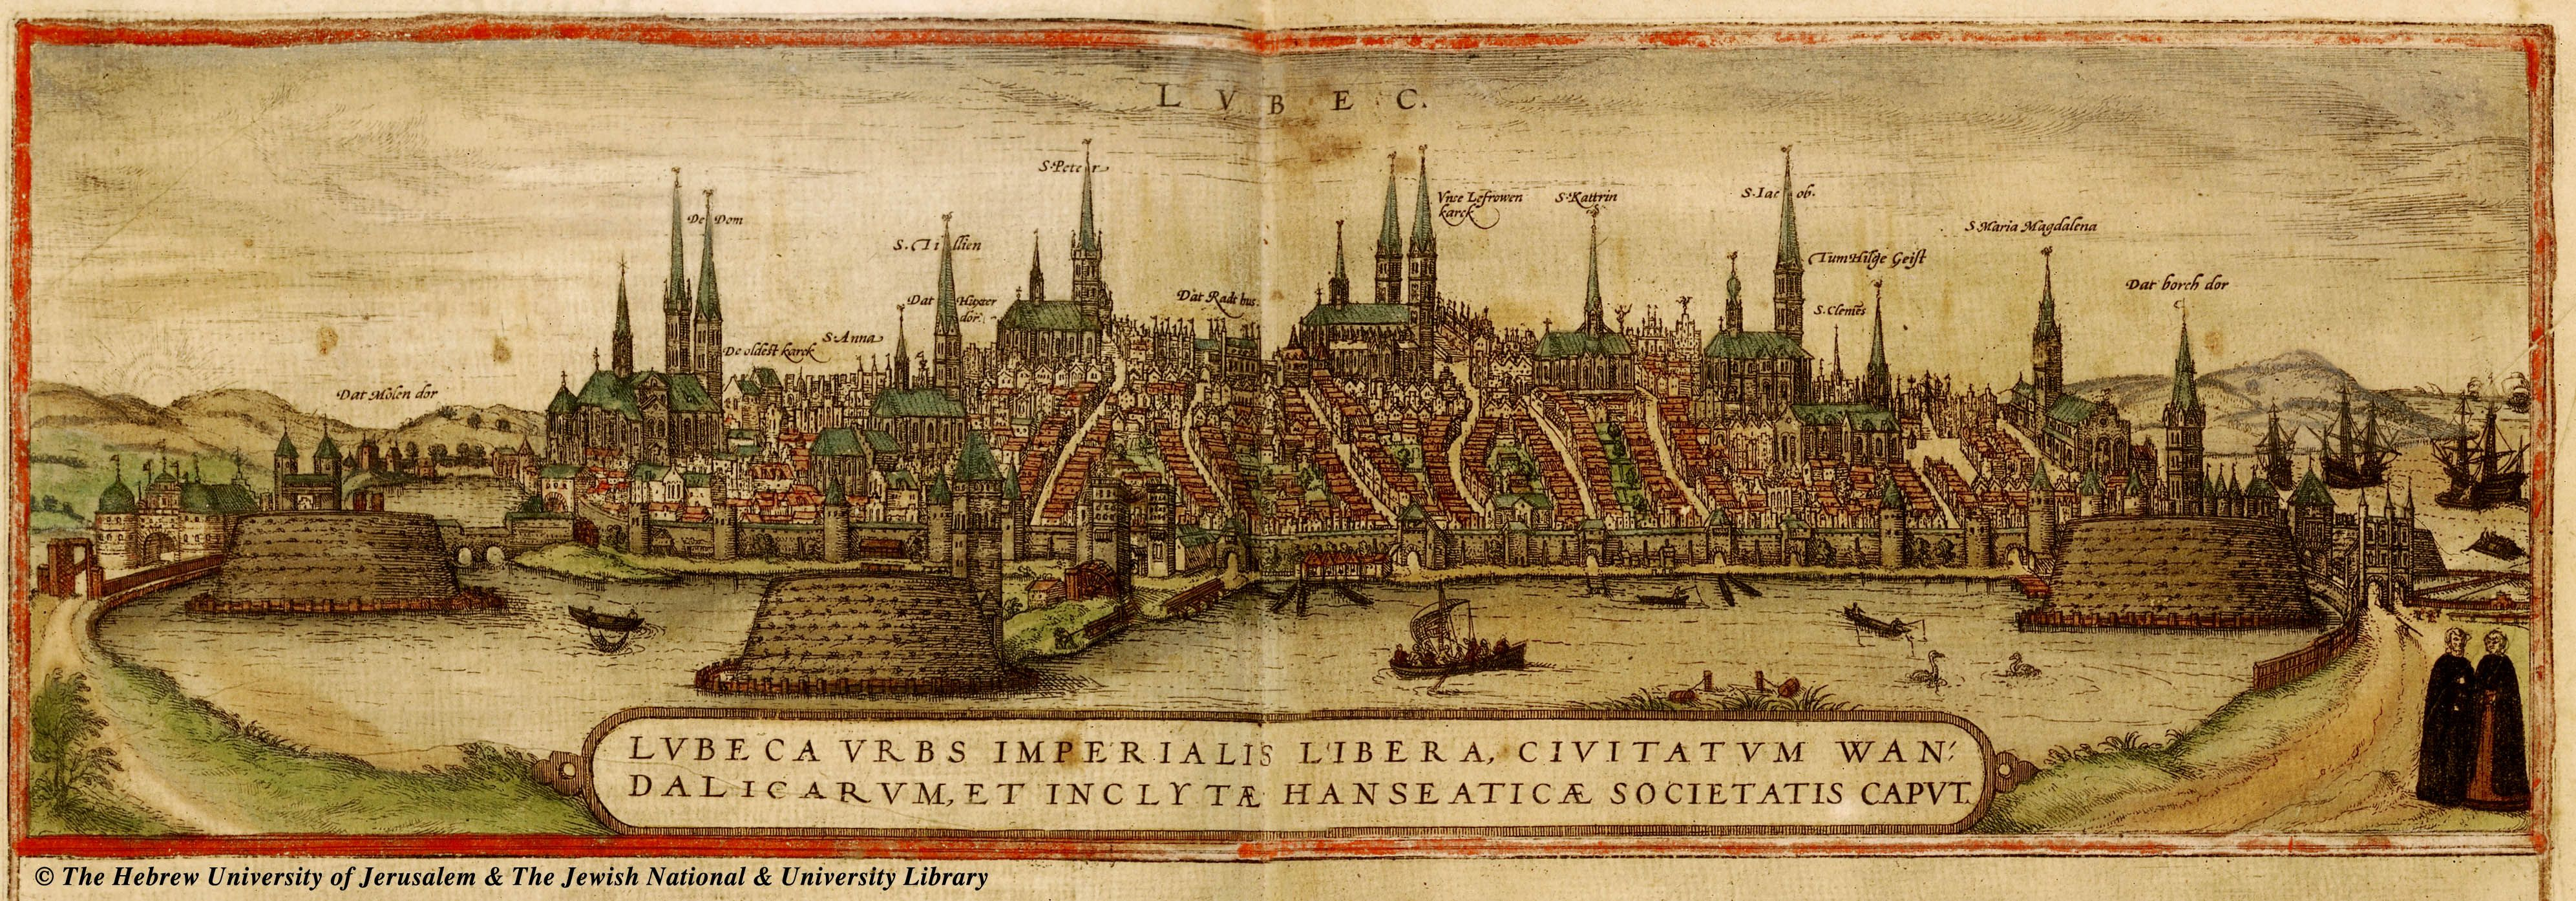 Lbeck ANTIQUE MAPS OF CITIES AND FORTRESSES Pinterest Antique